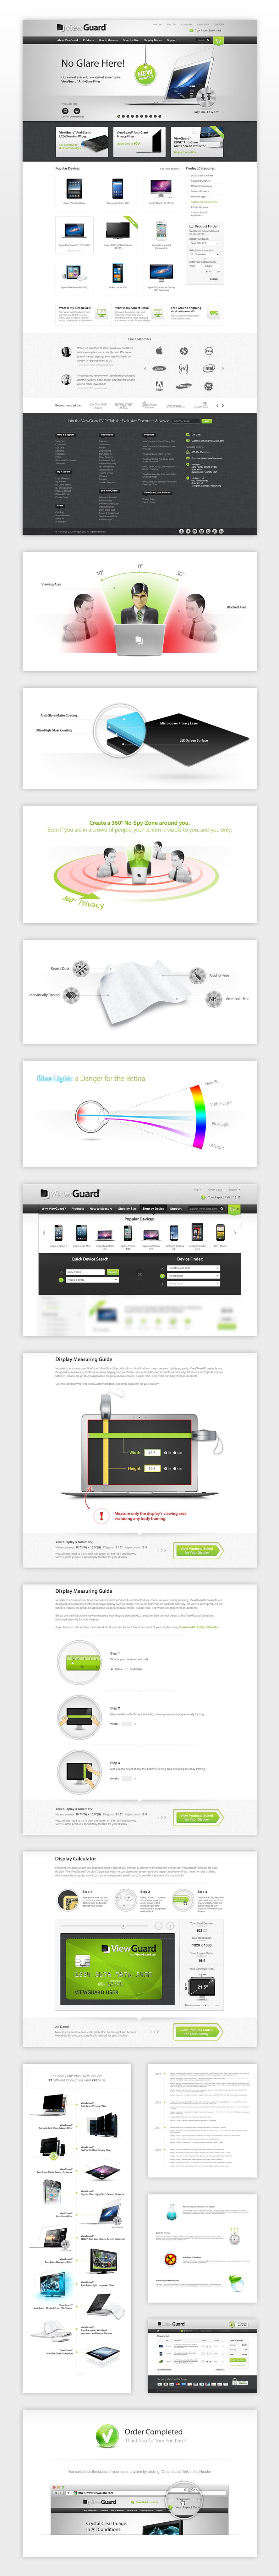 ViewGuard Web Pages